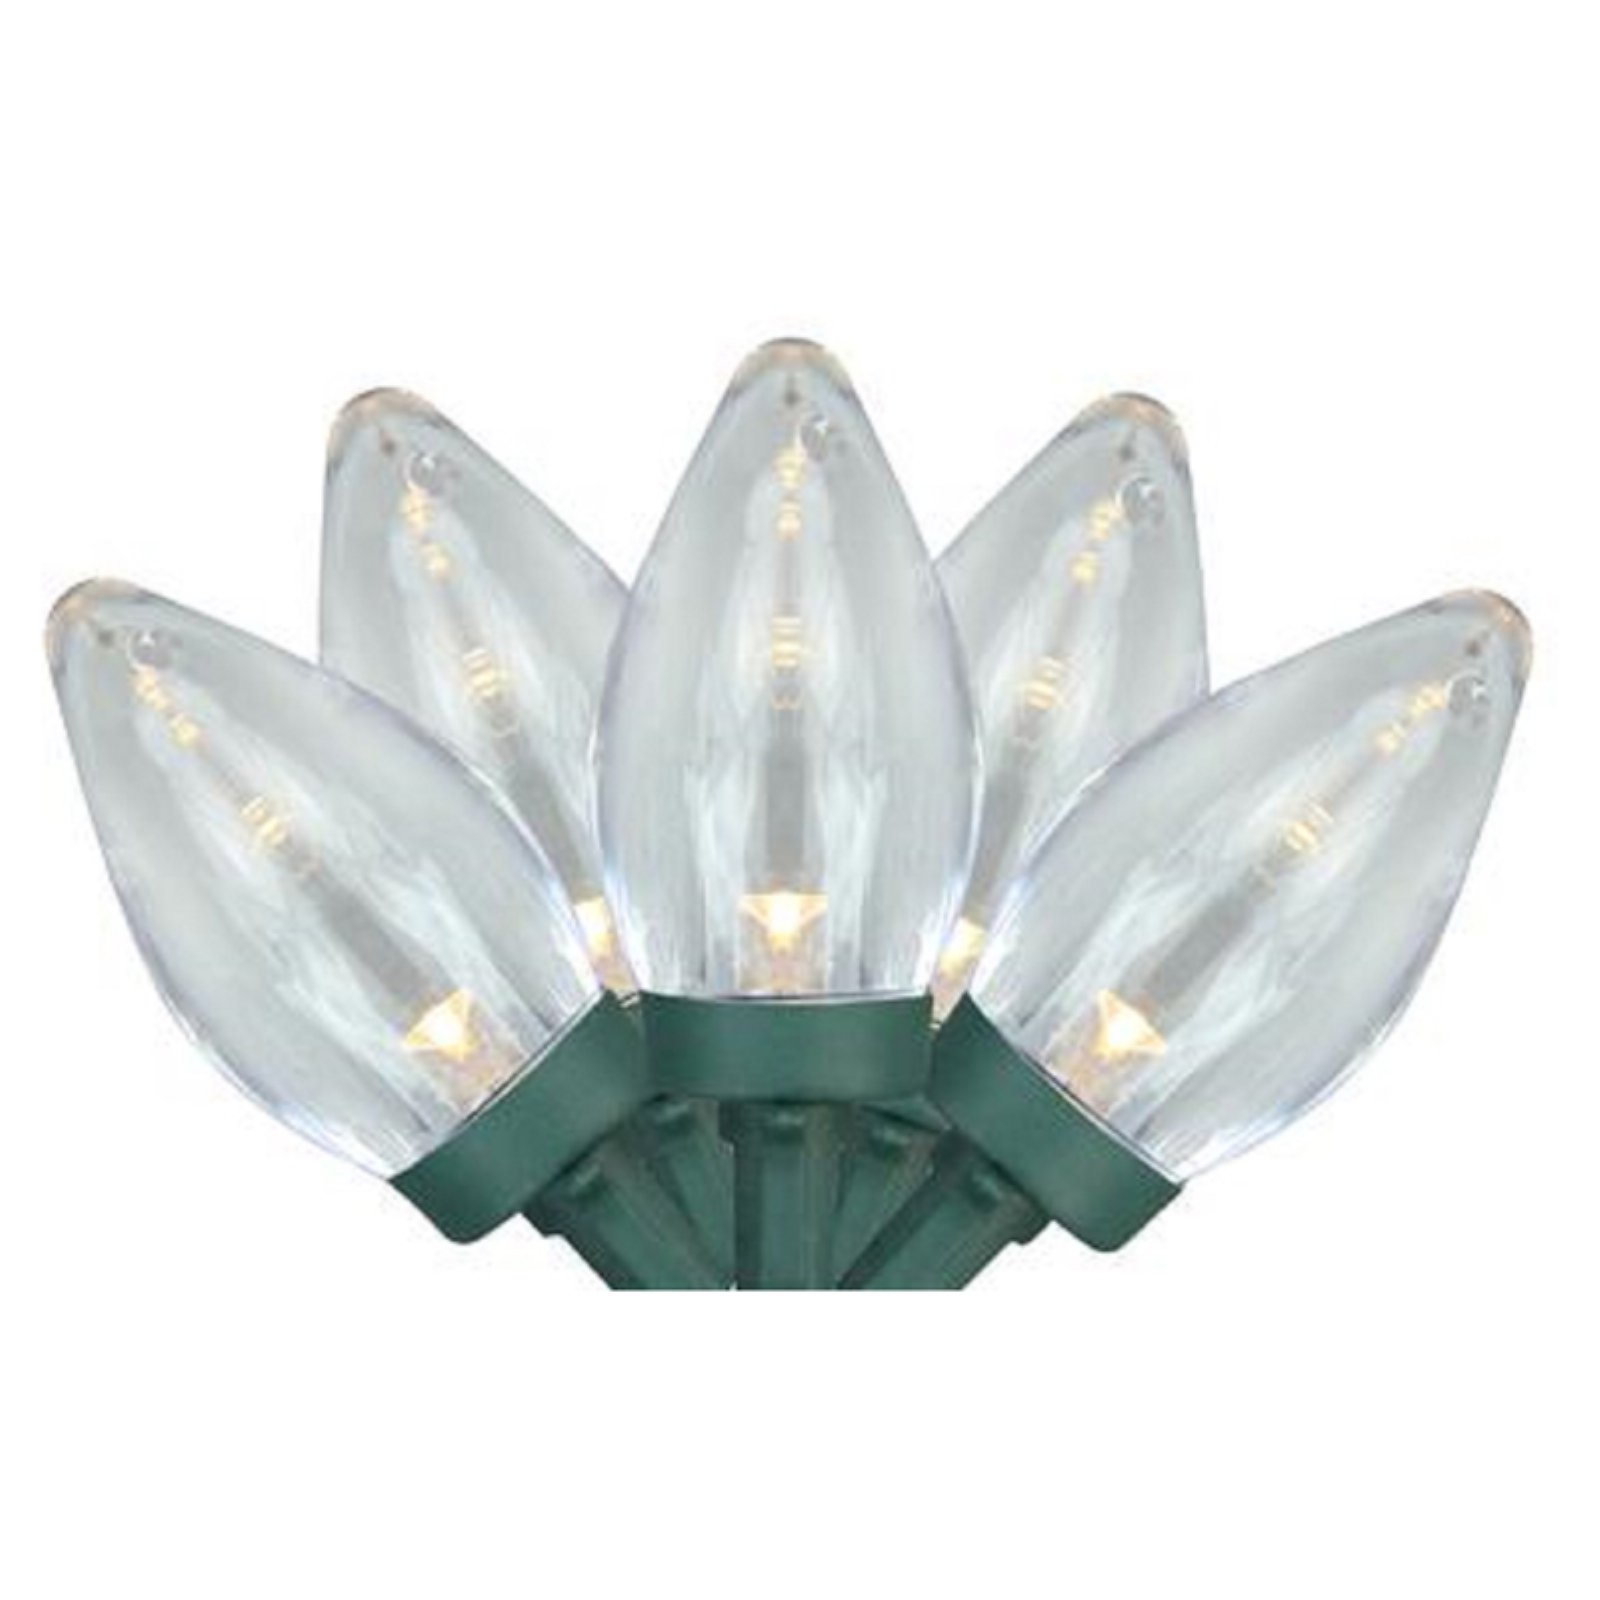 Northlight 25 LED C7 Christmas Lights on Green Wire